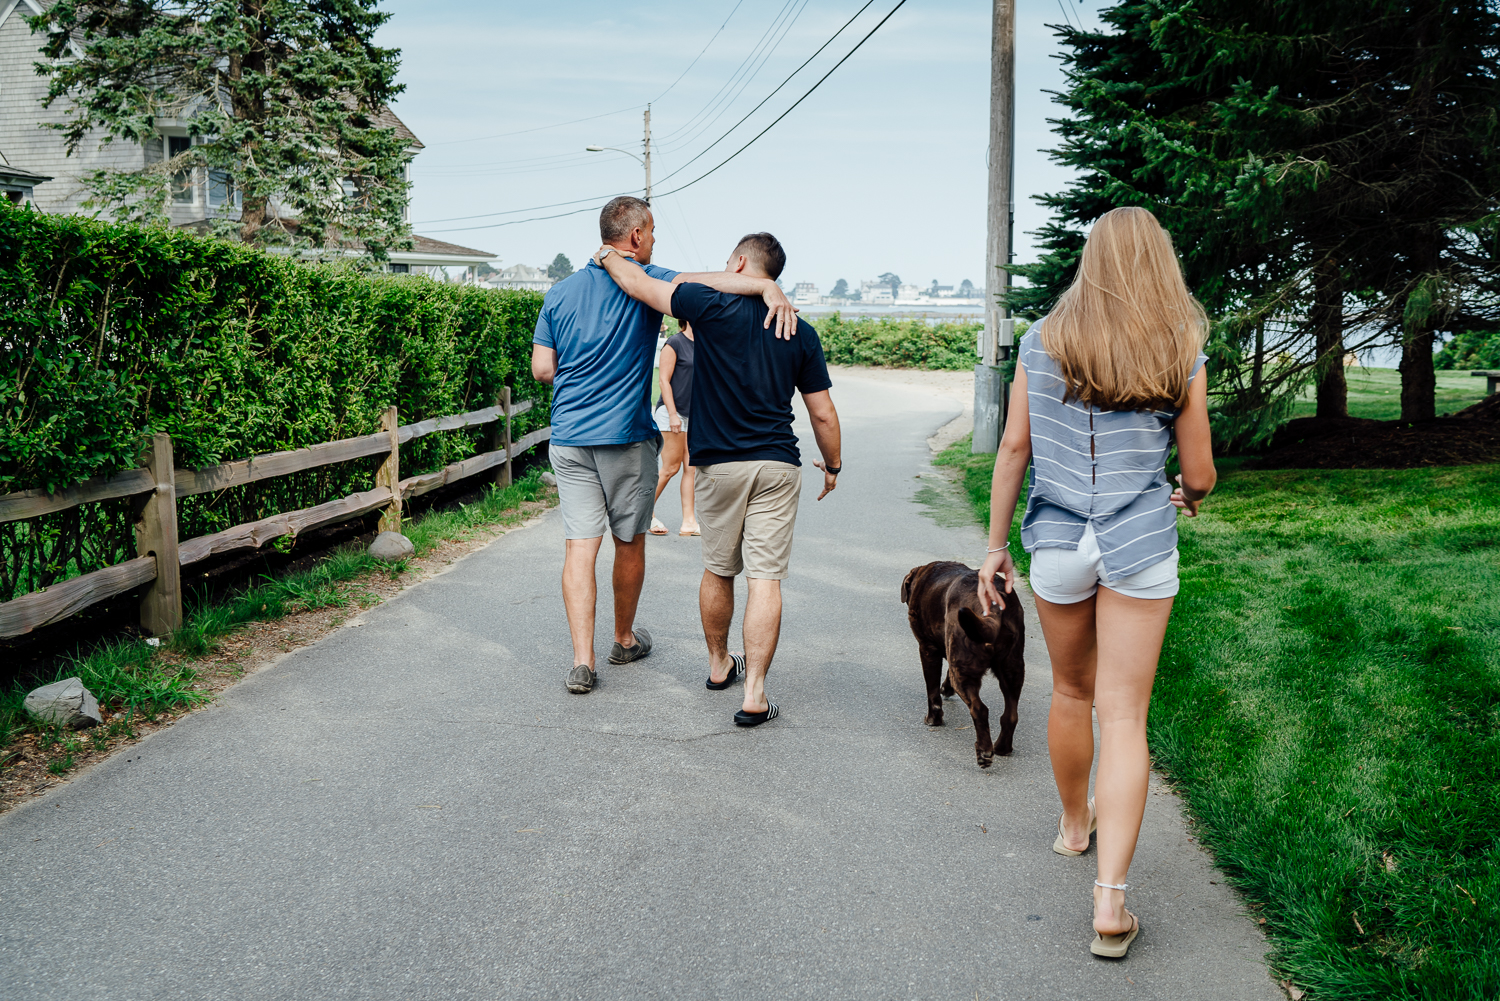 father and son walking with arms around each other while dog and daughter walk behind